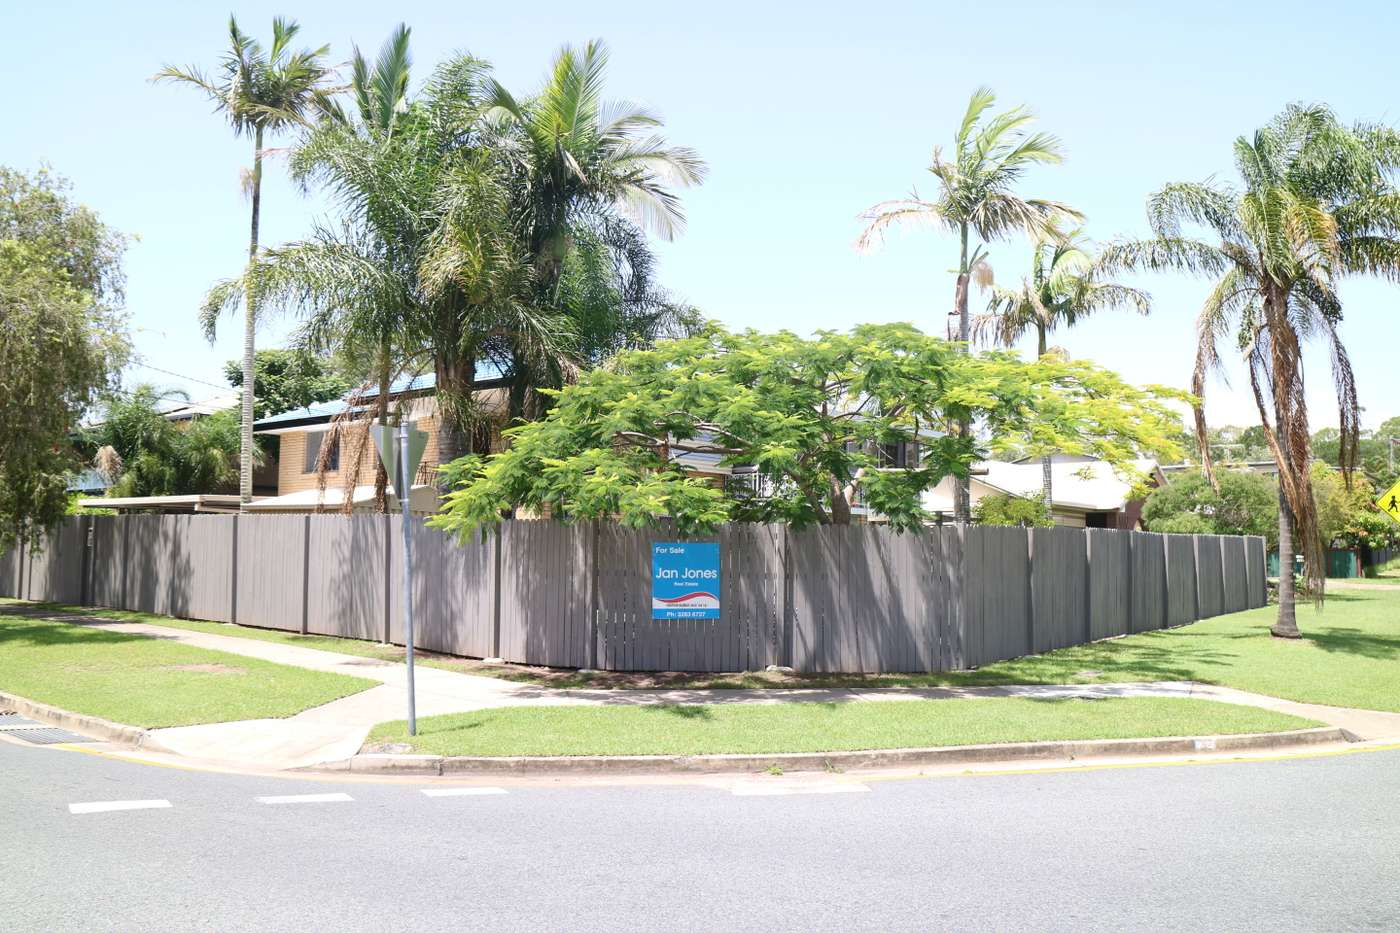 Main view of Homely house listing, 139 George St, Kippa-ring, QLD 4021